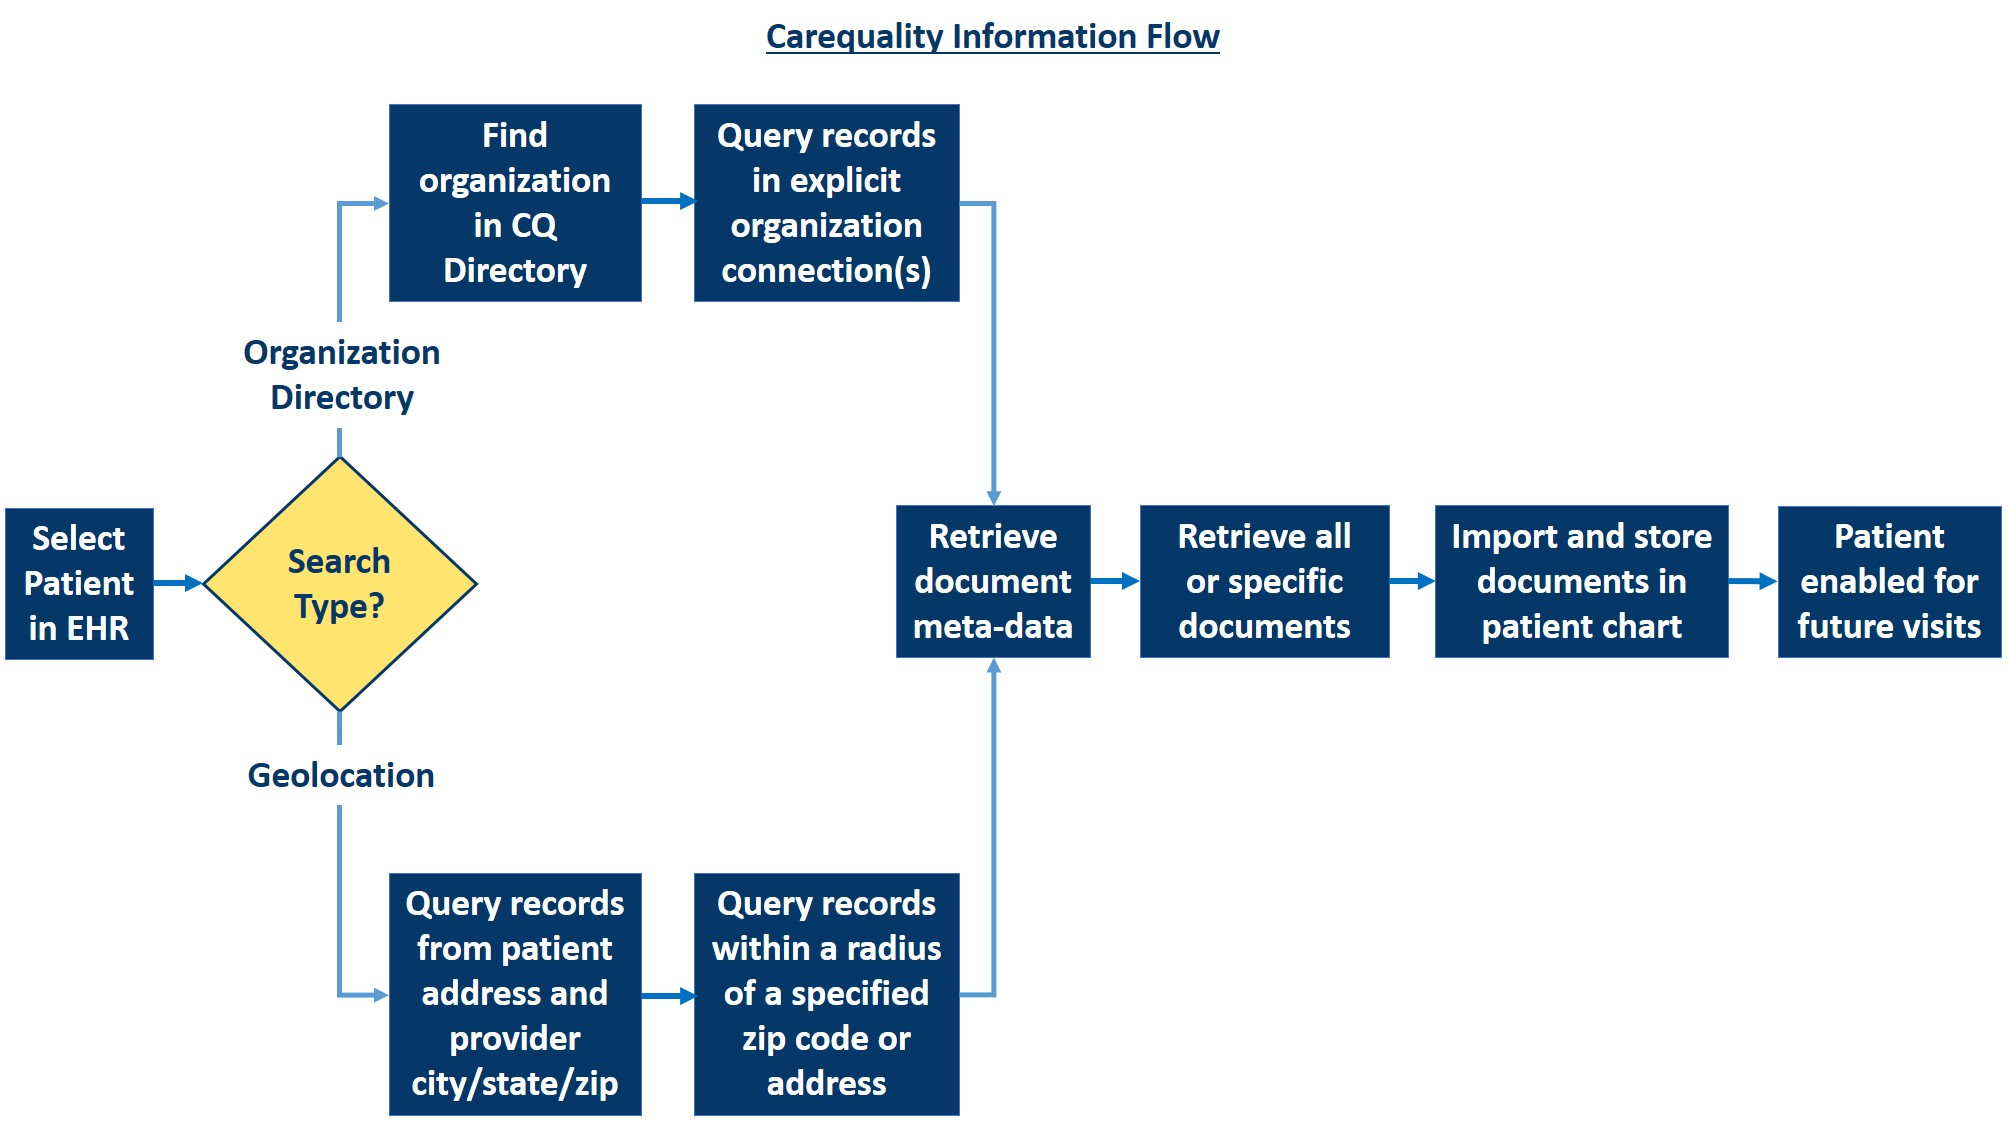 Carequality information flow diagram